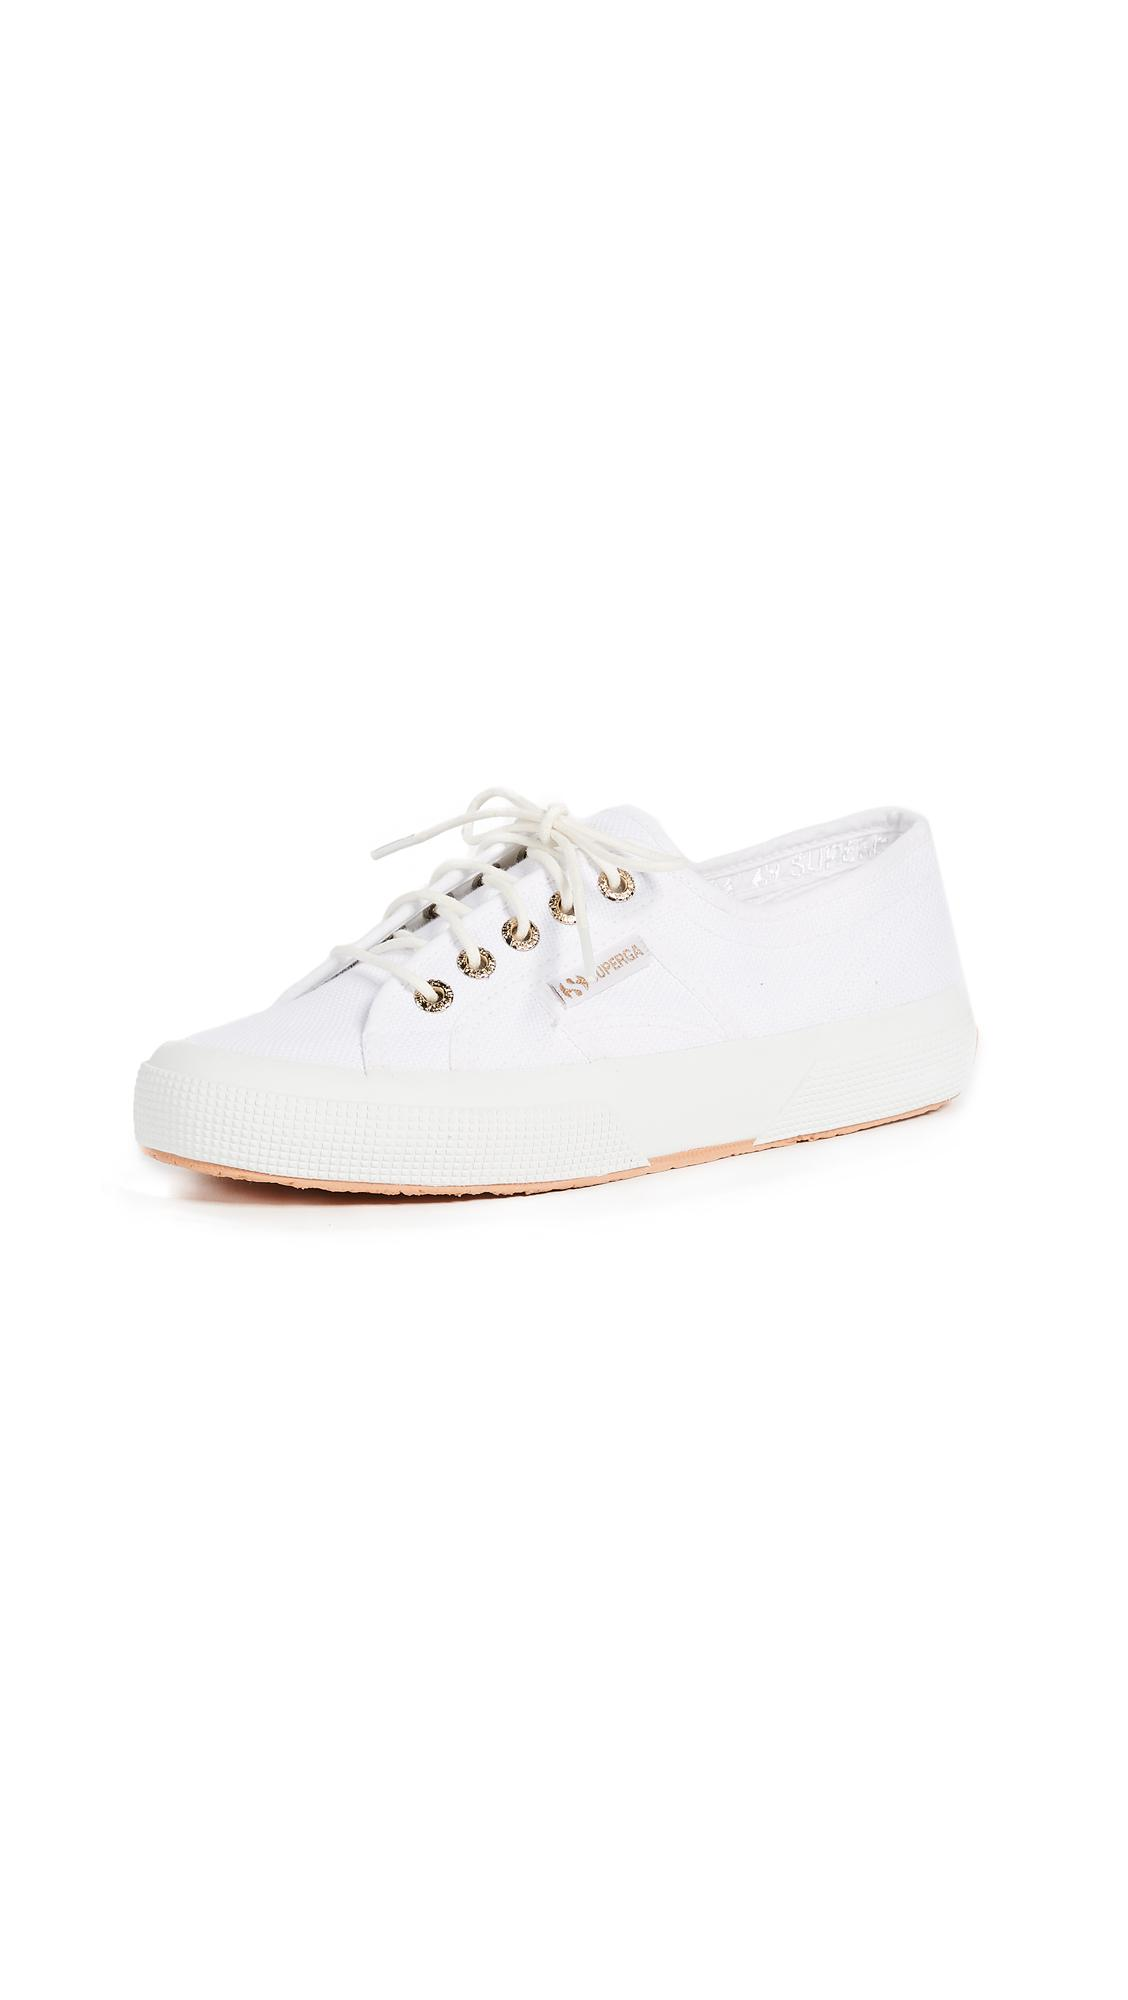 Superga Canvas 2750 Sant Ambroeus Laceup Sneakers in White